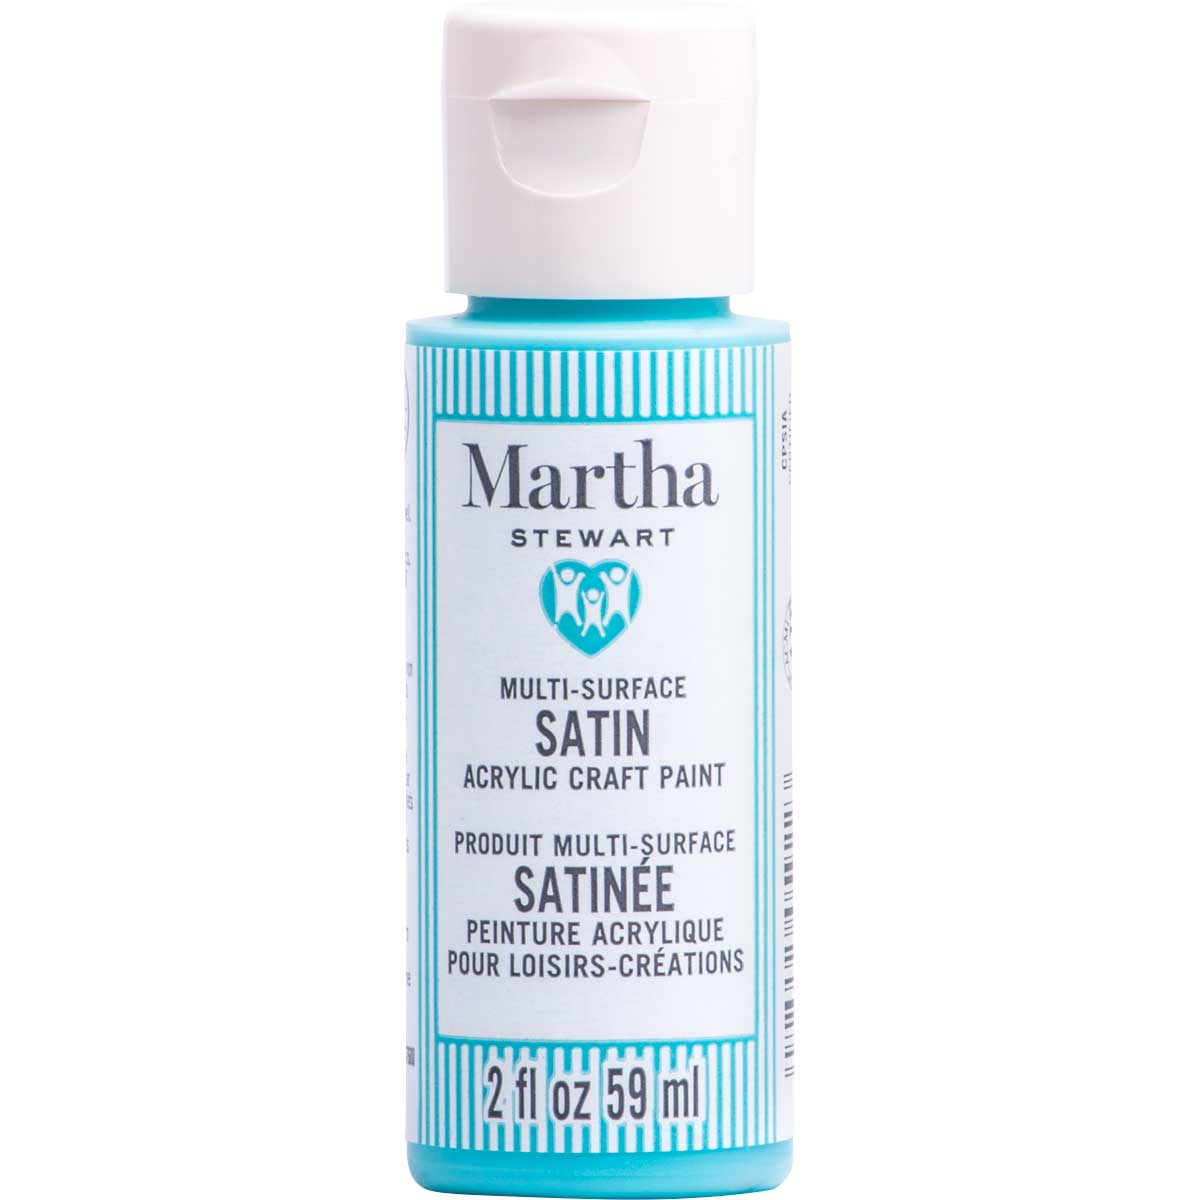 Martha Stewart ® Multi-Surface Satin Acrylic Craft Paint CPSIA - Aqua, 2 oz.